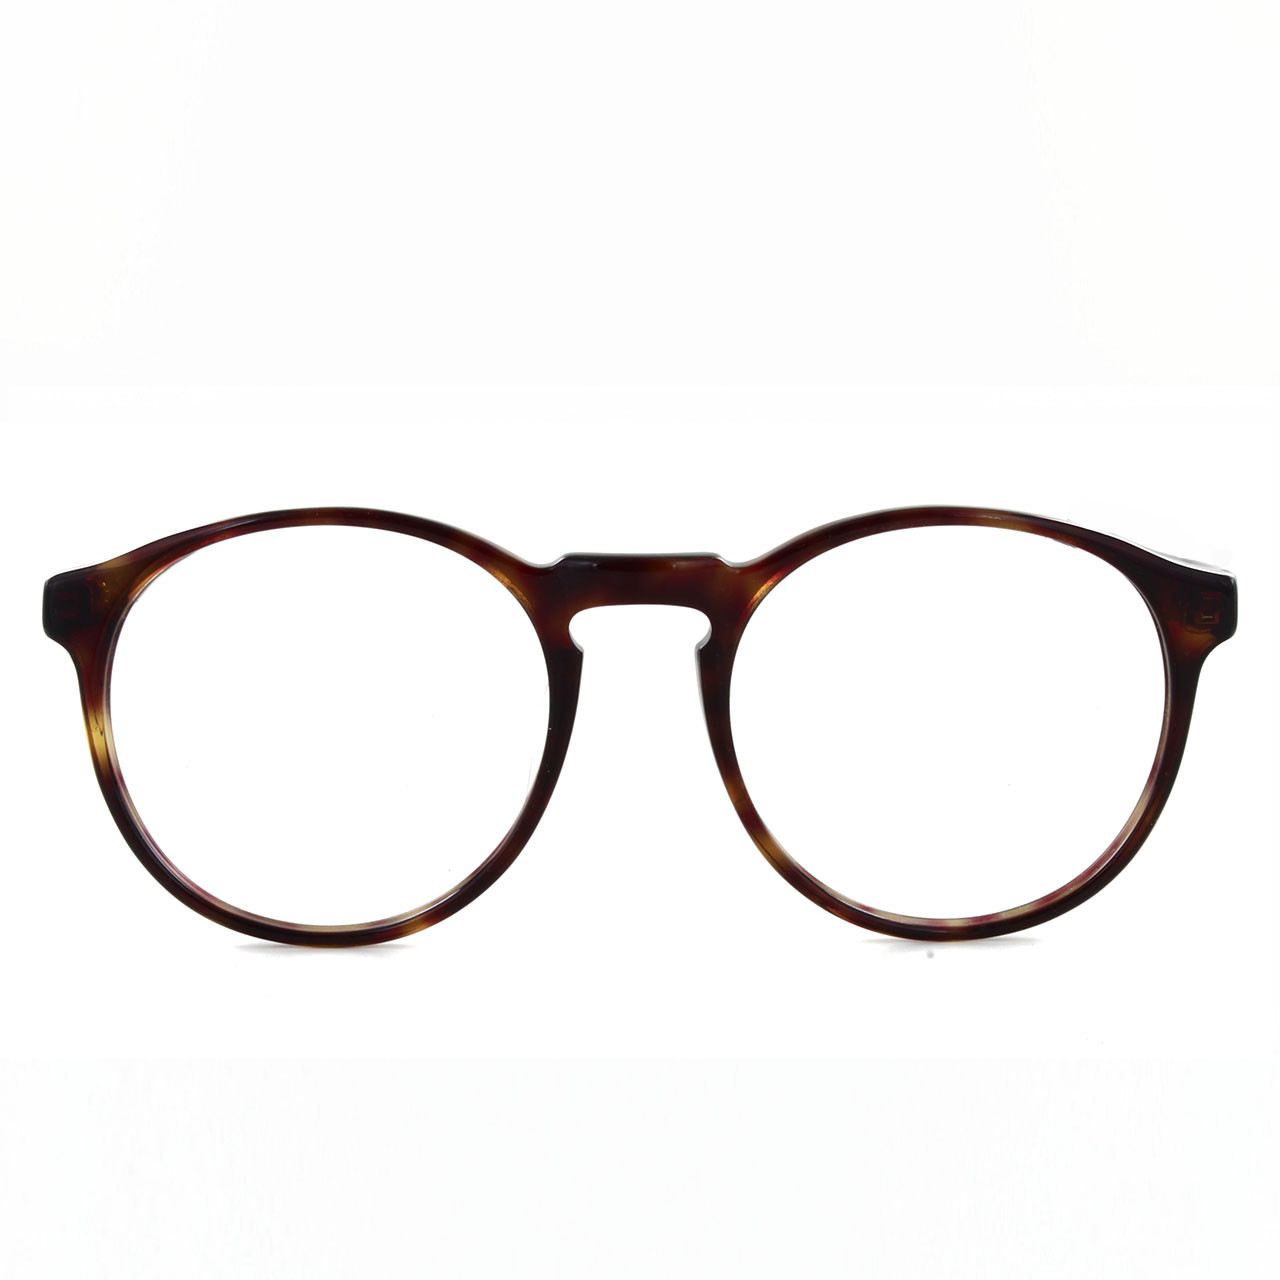 GEEK COUTURE style Trudel